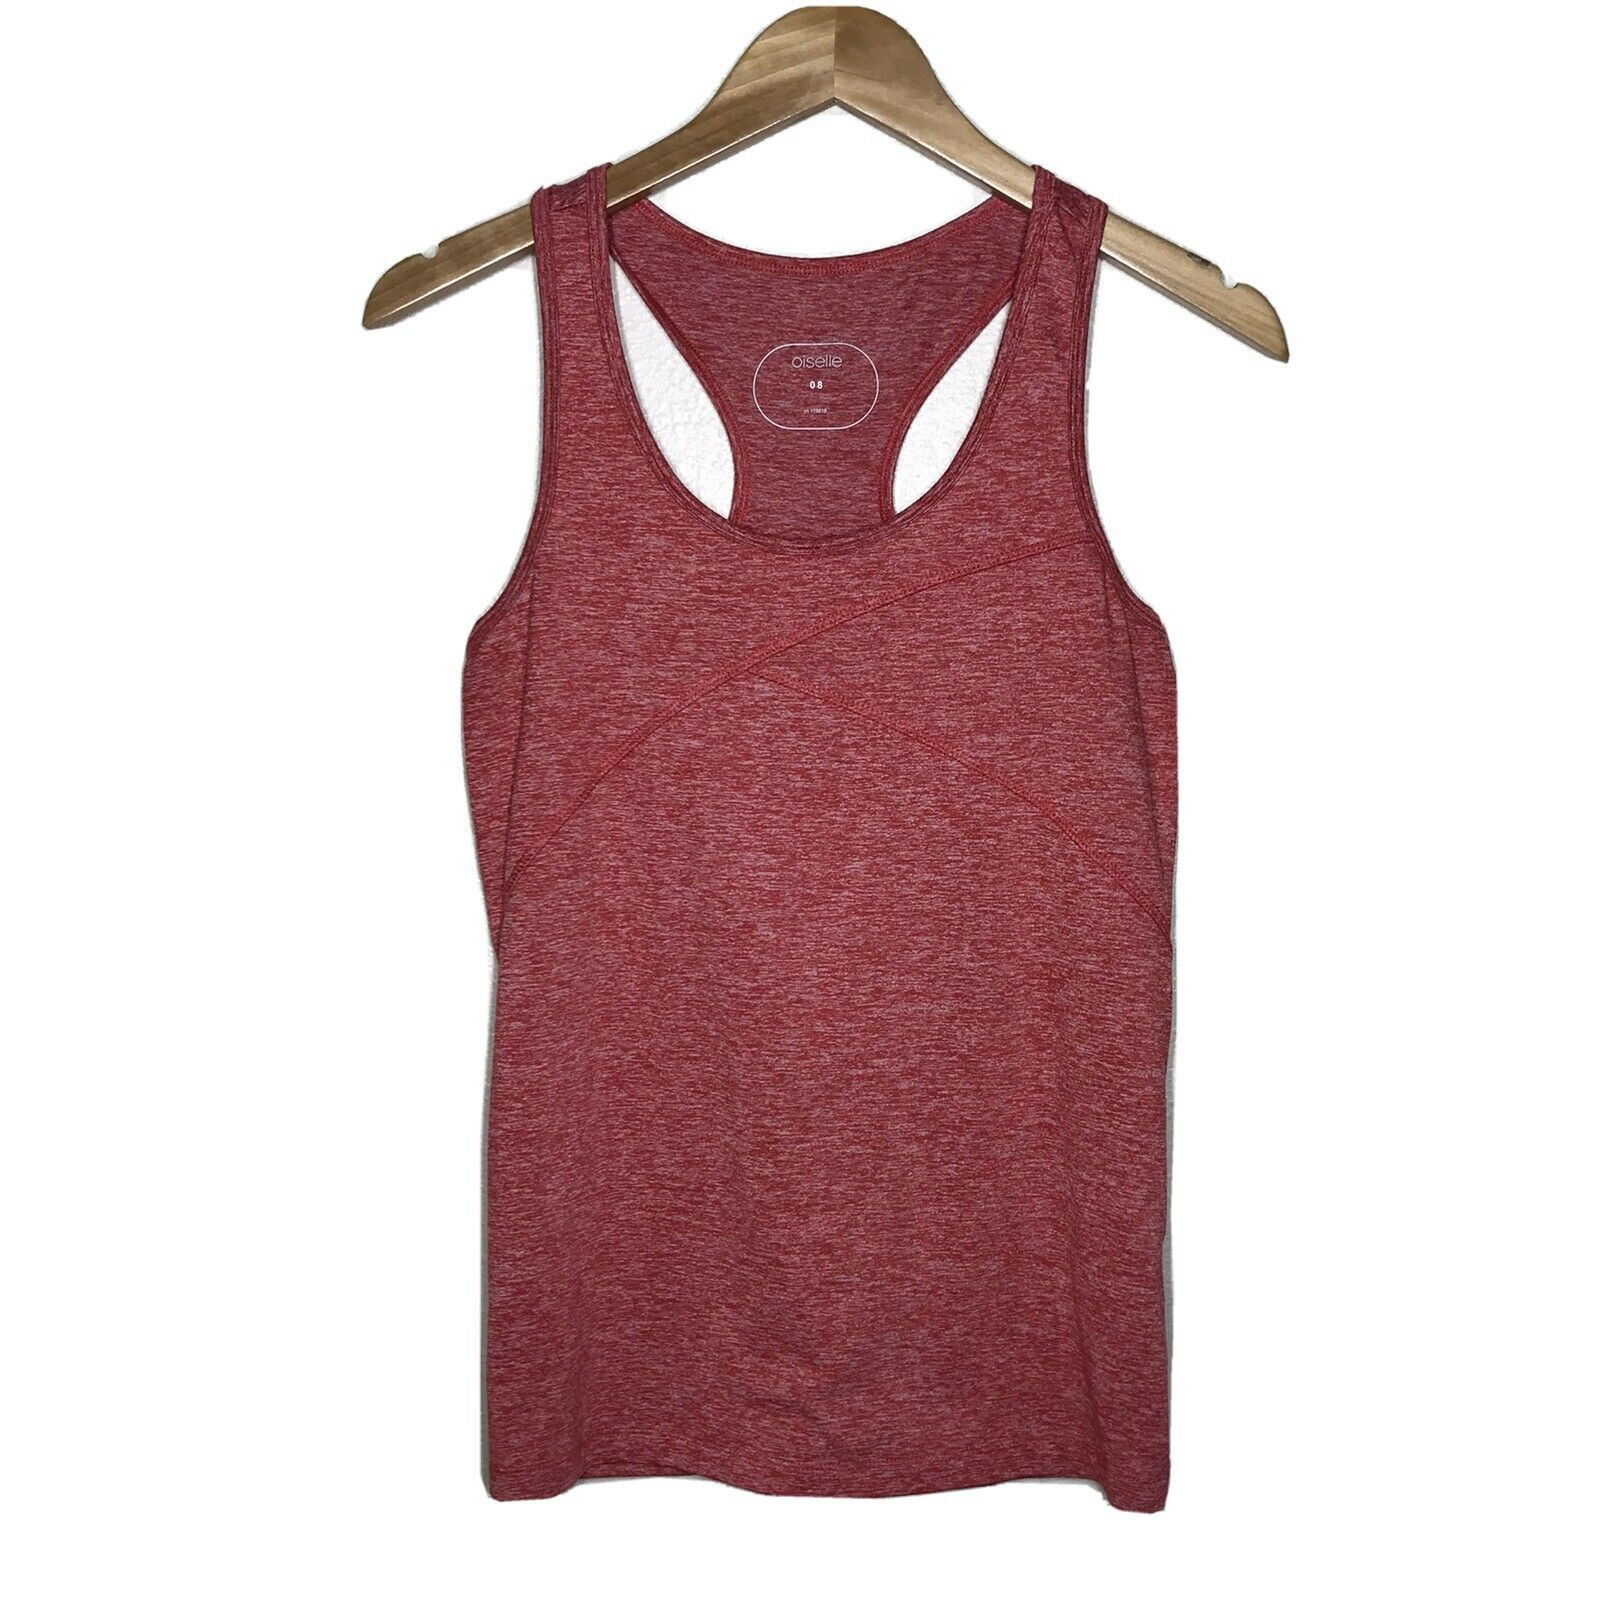 Oiselle Lux Winona Heather Red Racerback Athletic Tank Top Womens 8